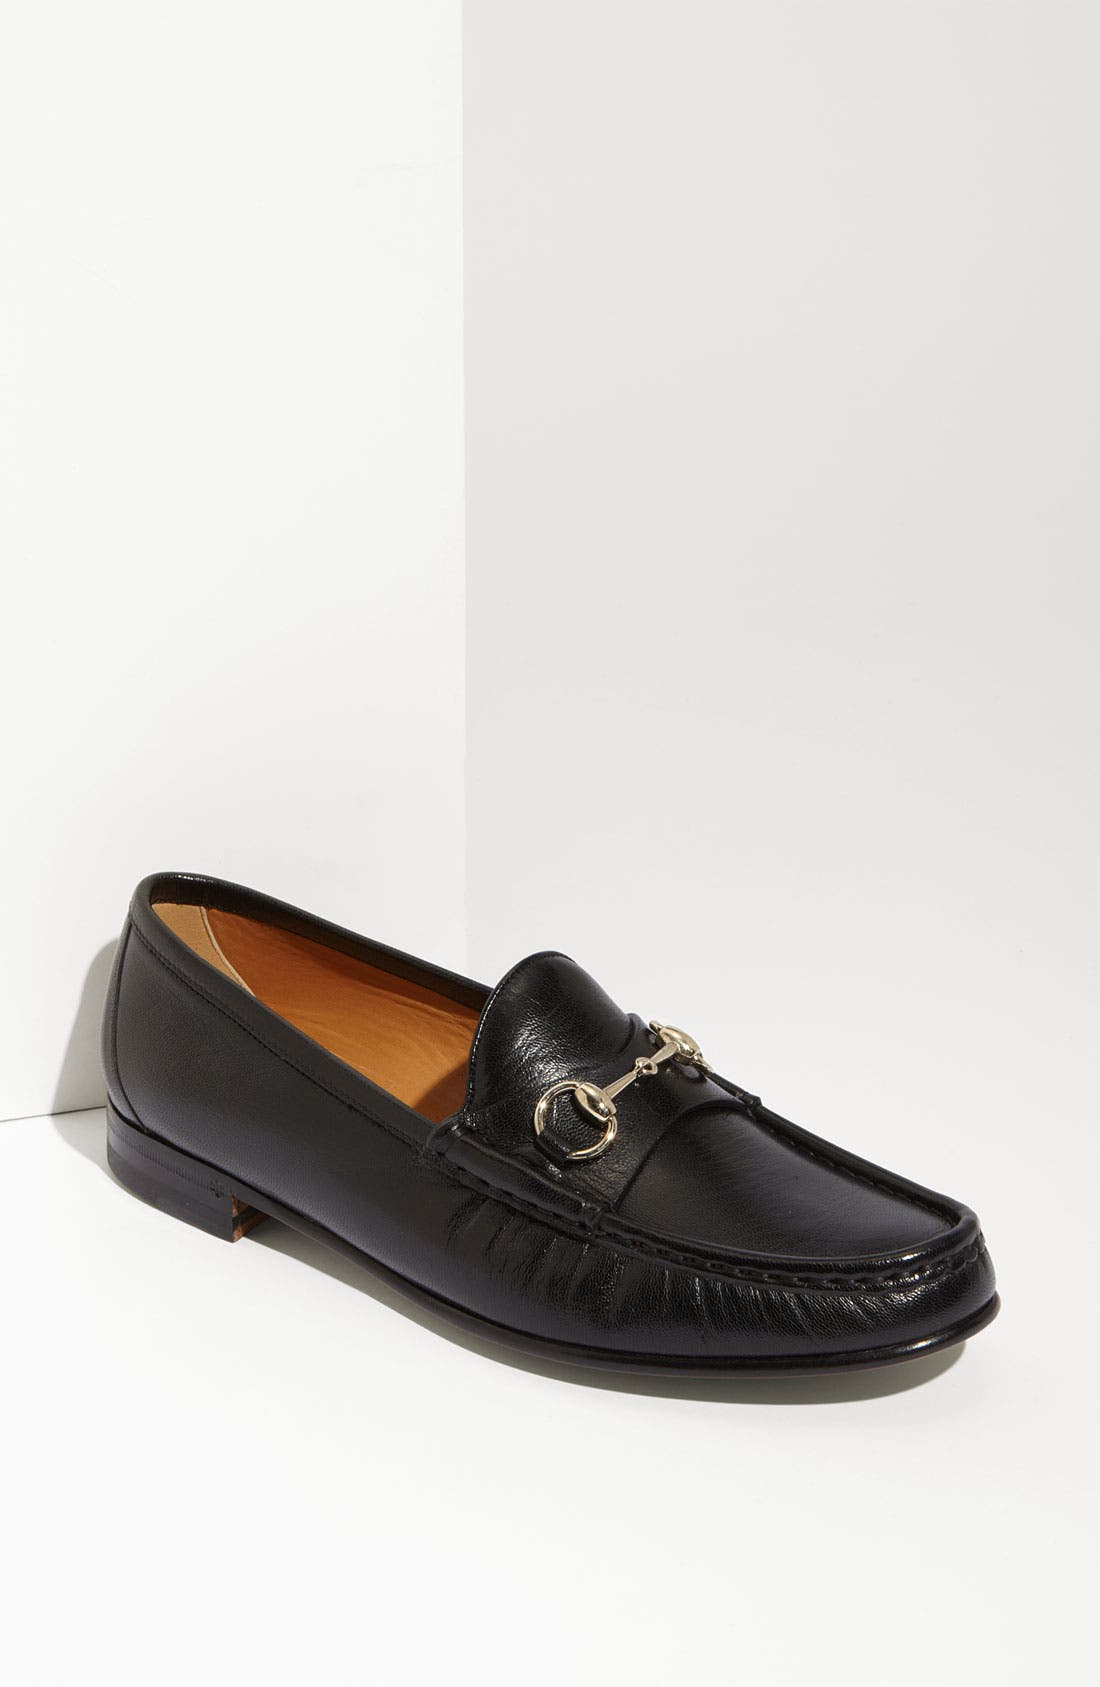 Alternate Image 1 Selected - Gucci 'Clyde' Leather Loafer